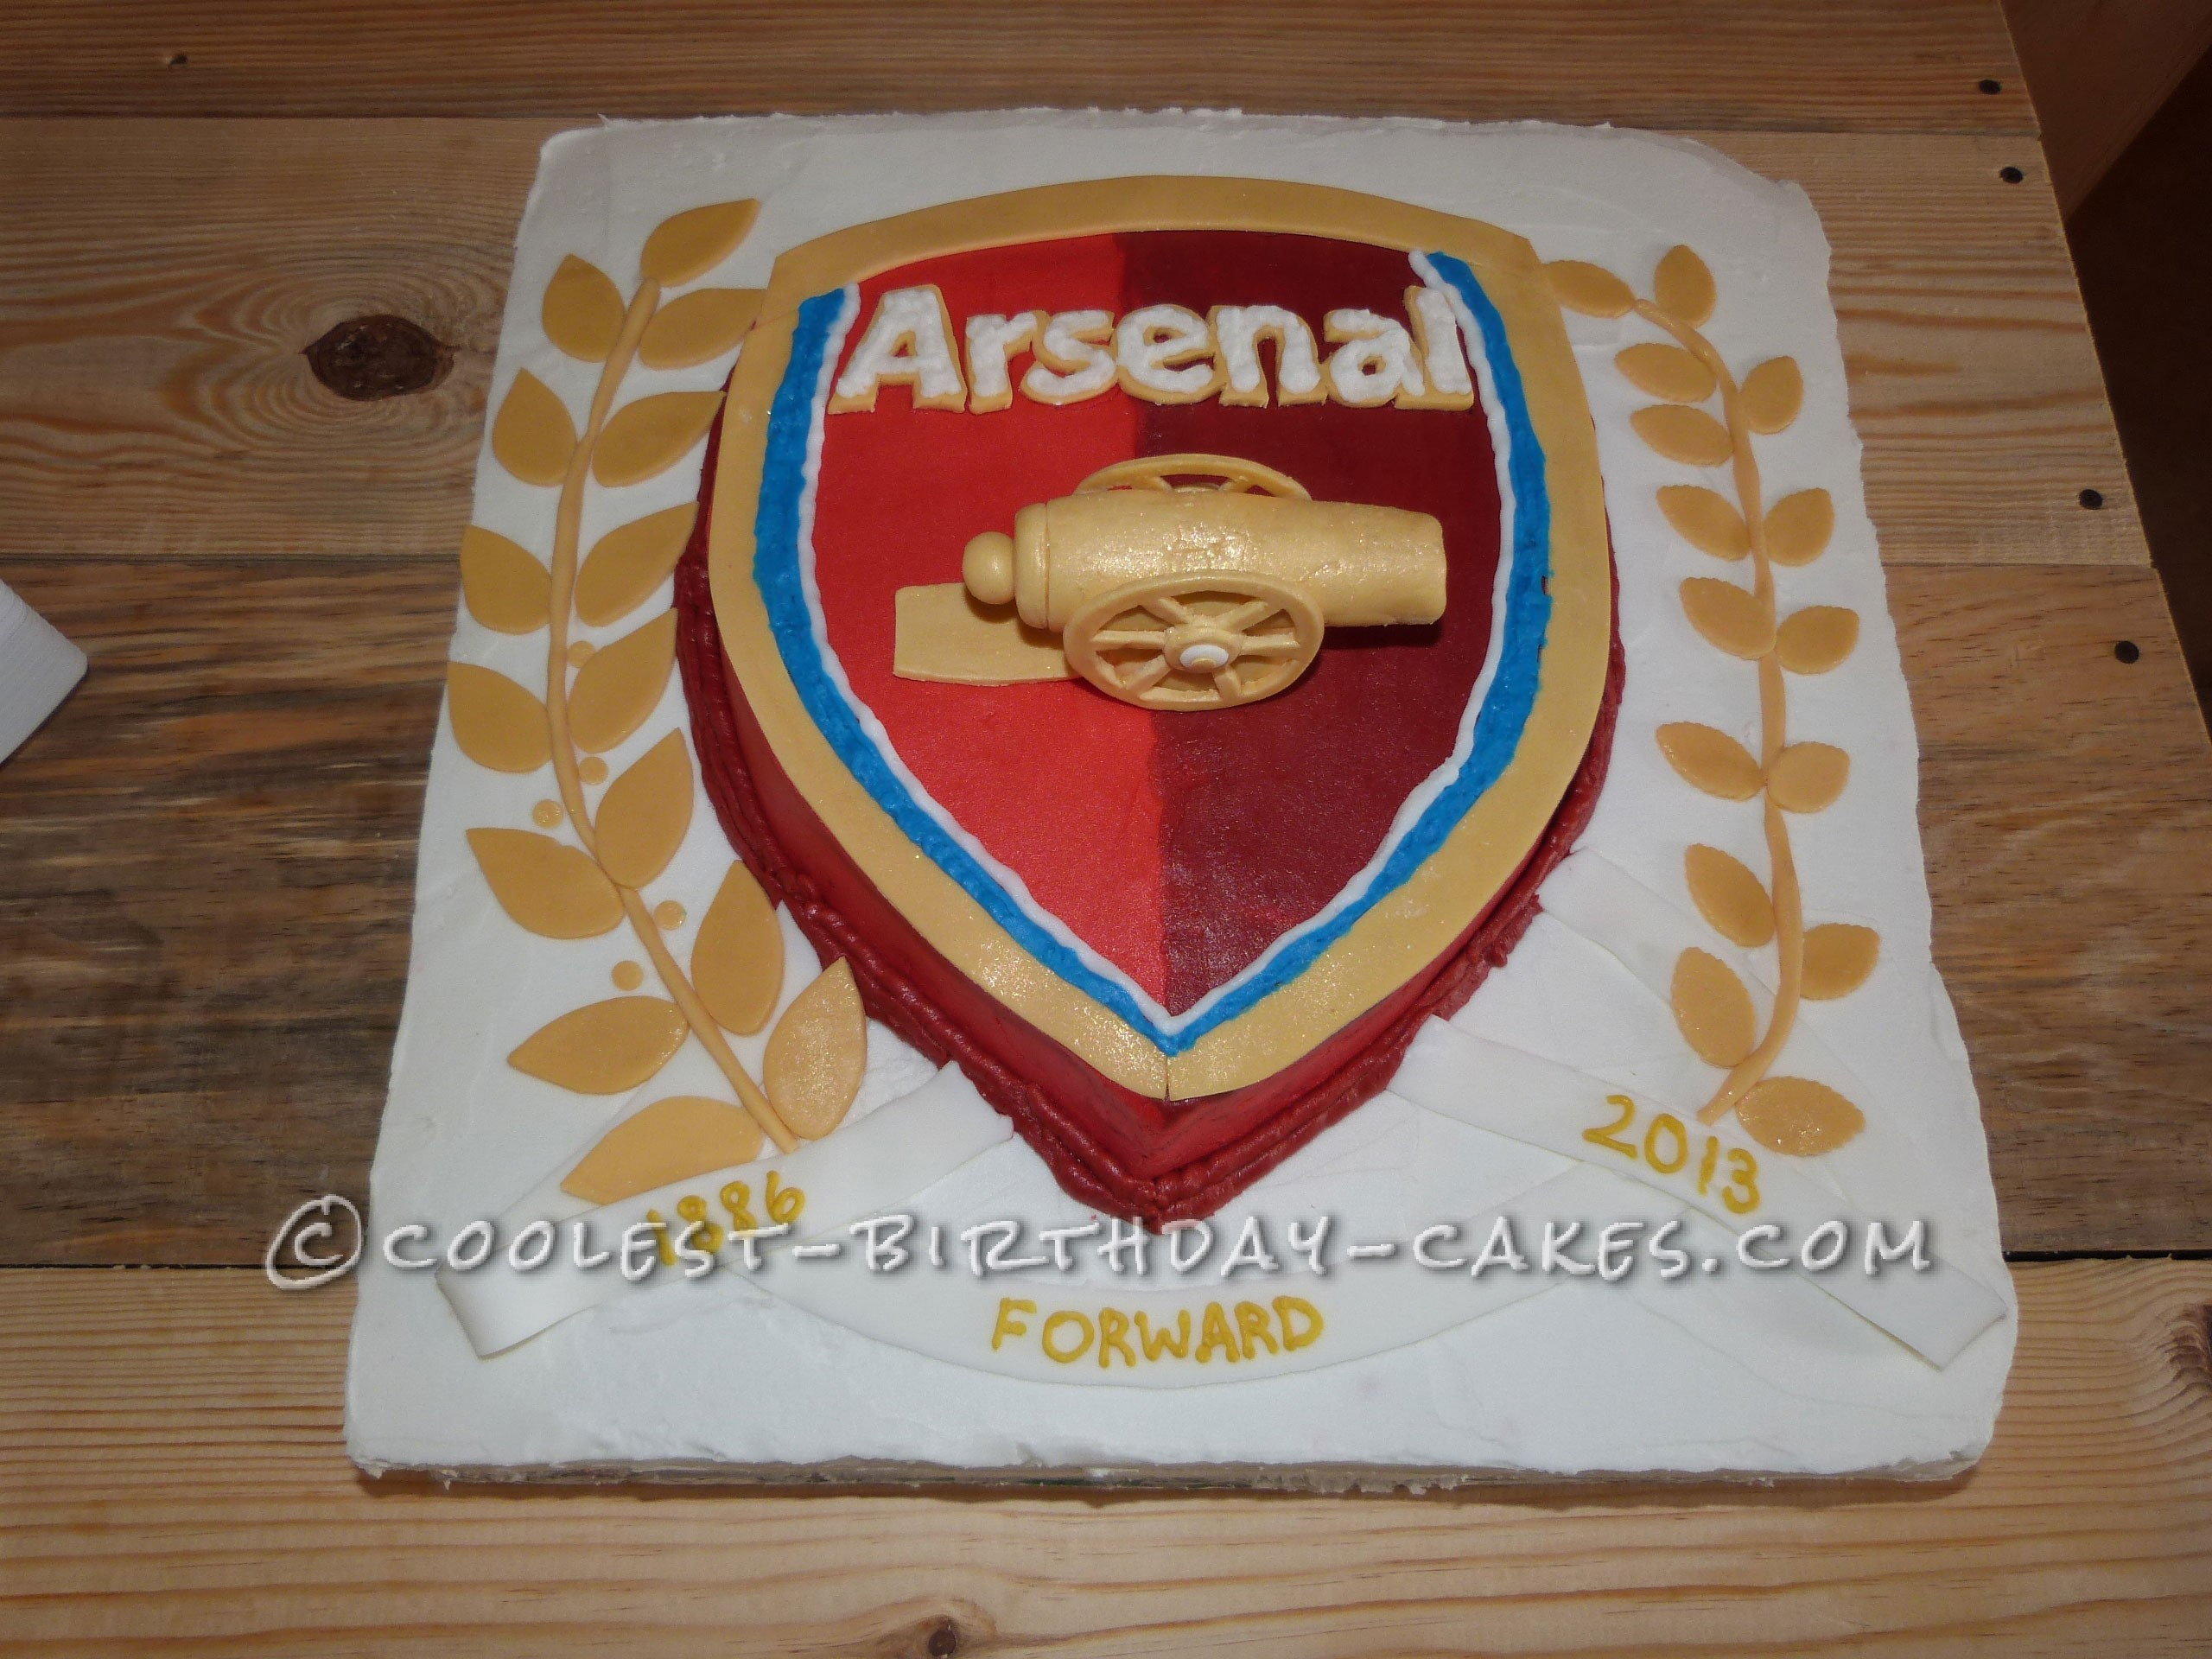 Awesome Arsenal Football Club Cake For A Soccer Fanatic